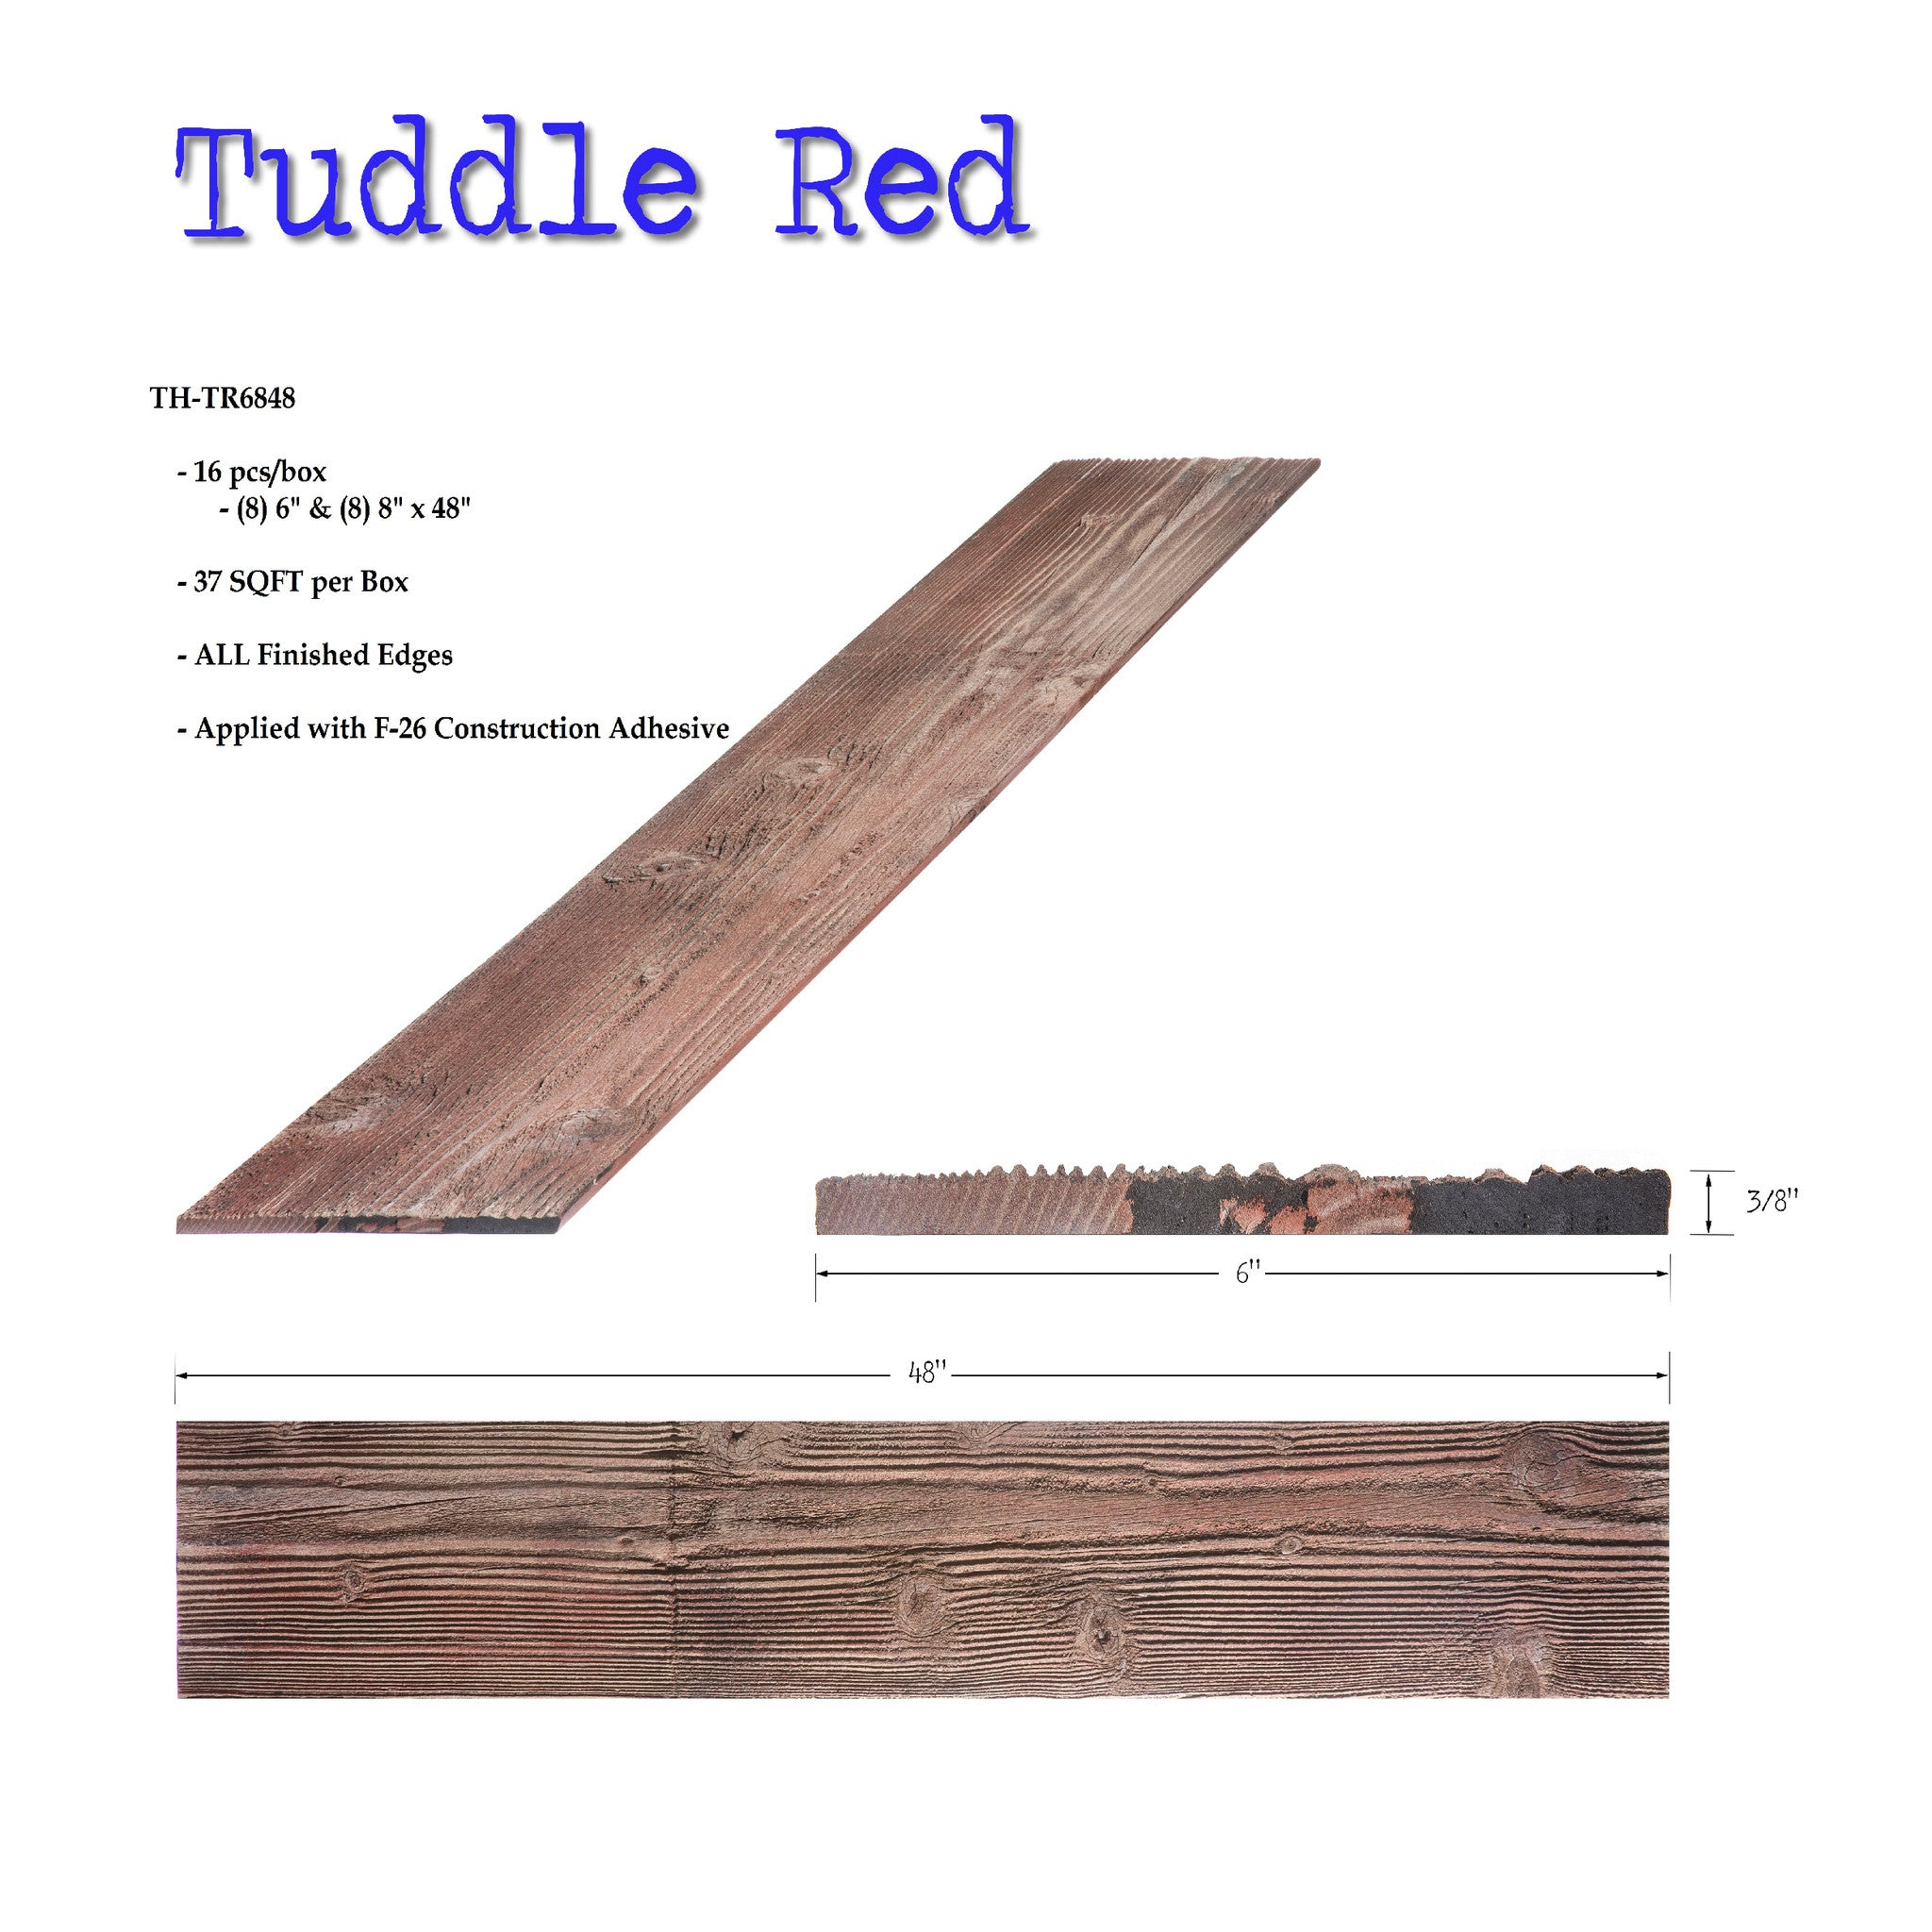 Thin Plank-Tuddle Red 37.33 sq ft box @$8.95/sq ft